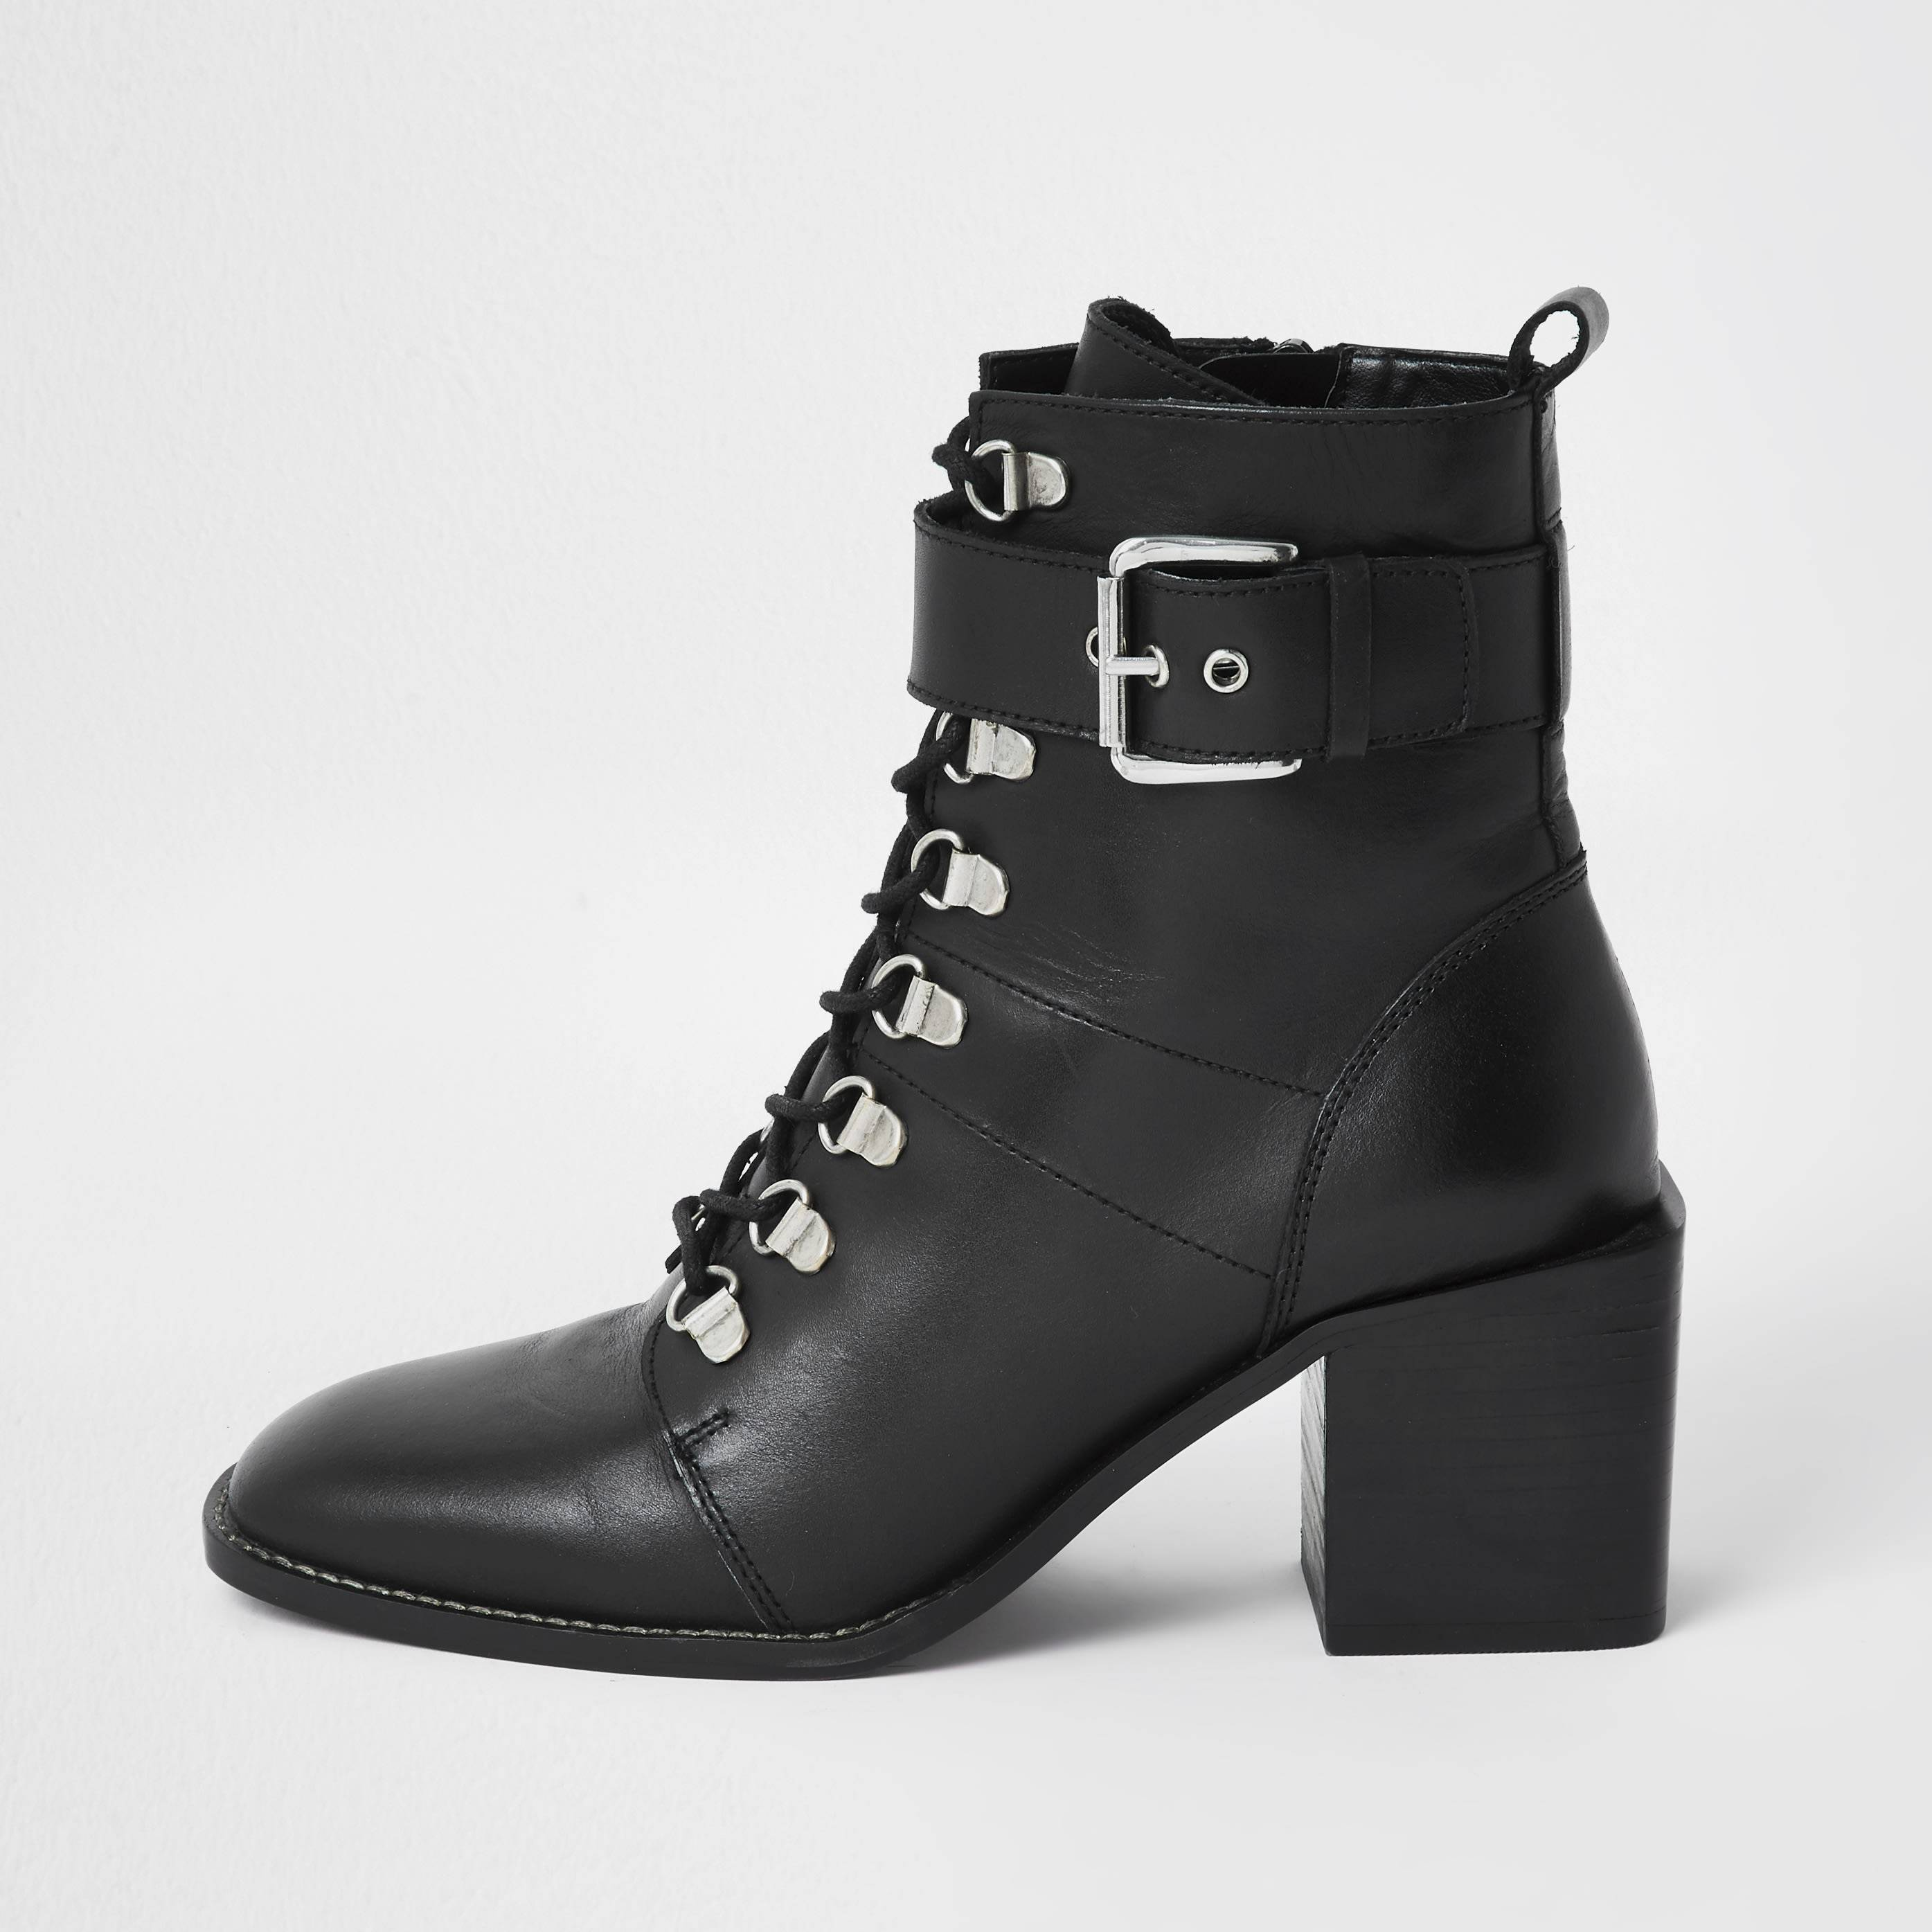 river island Womens Black lace up block heel boots (5)